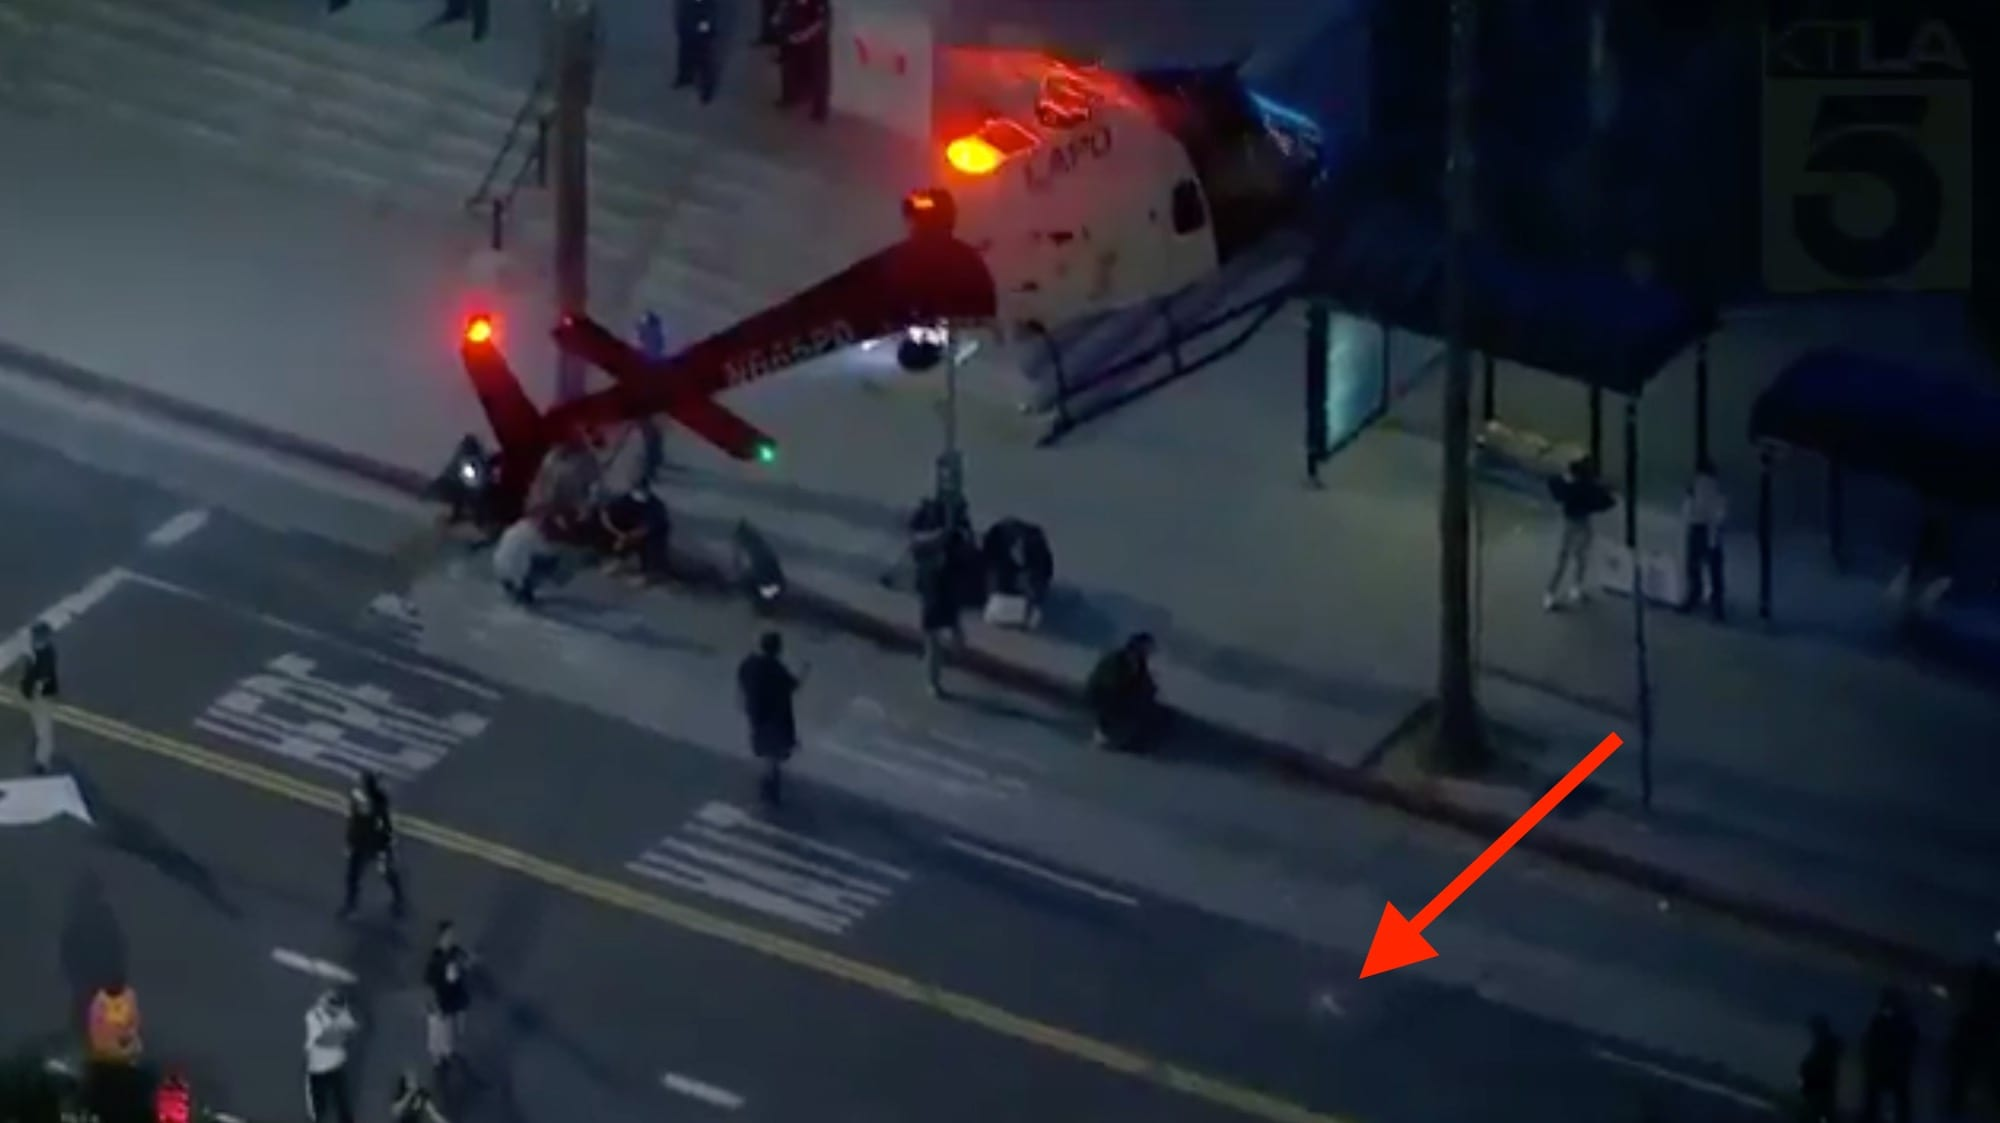 Police helicopter tries to force down drone amidst protests in Los Angeles